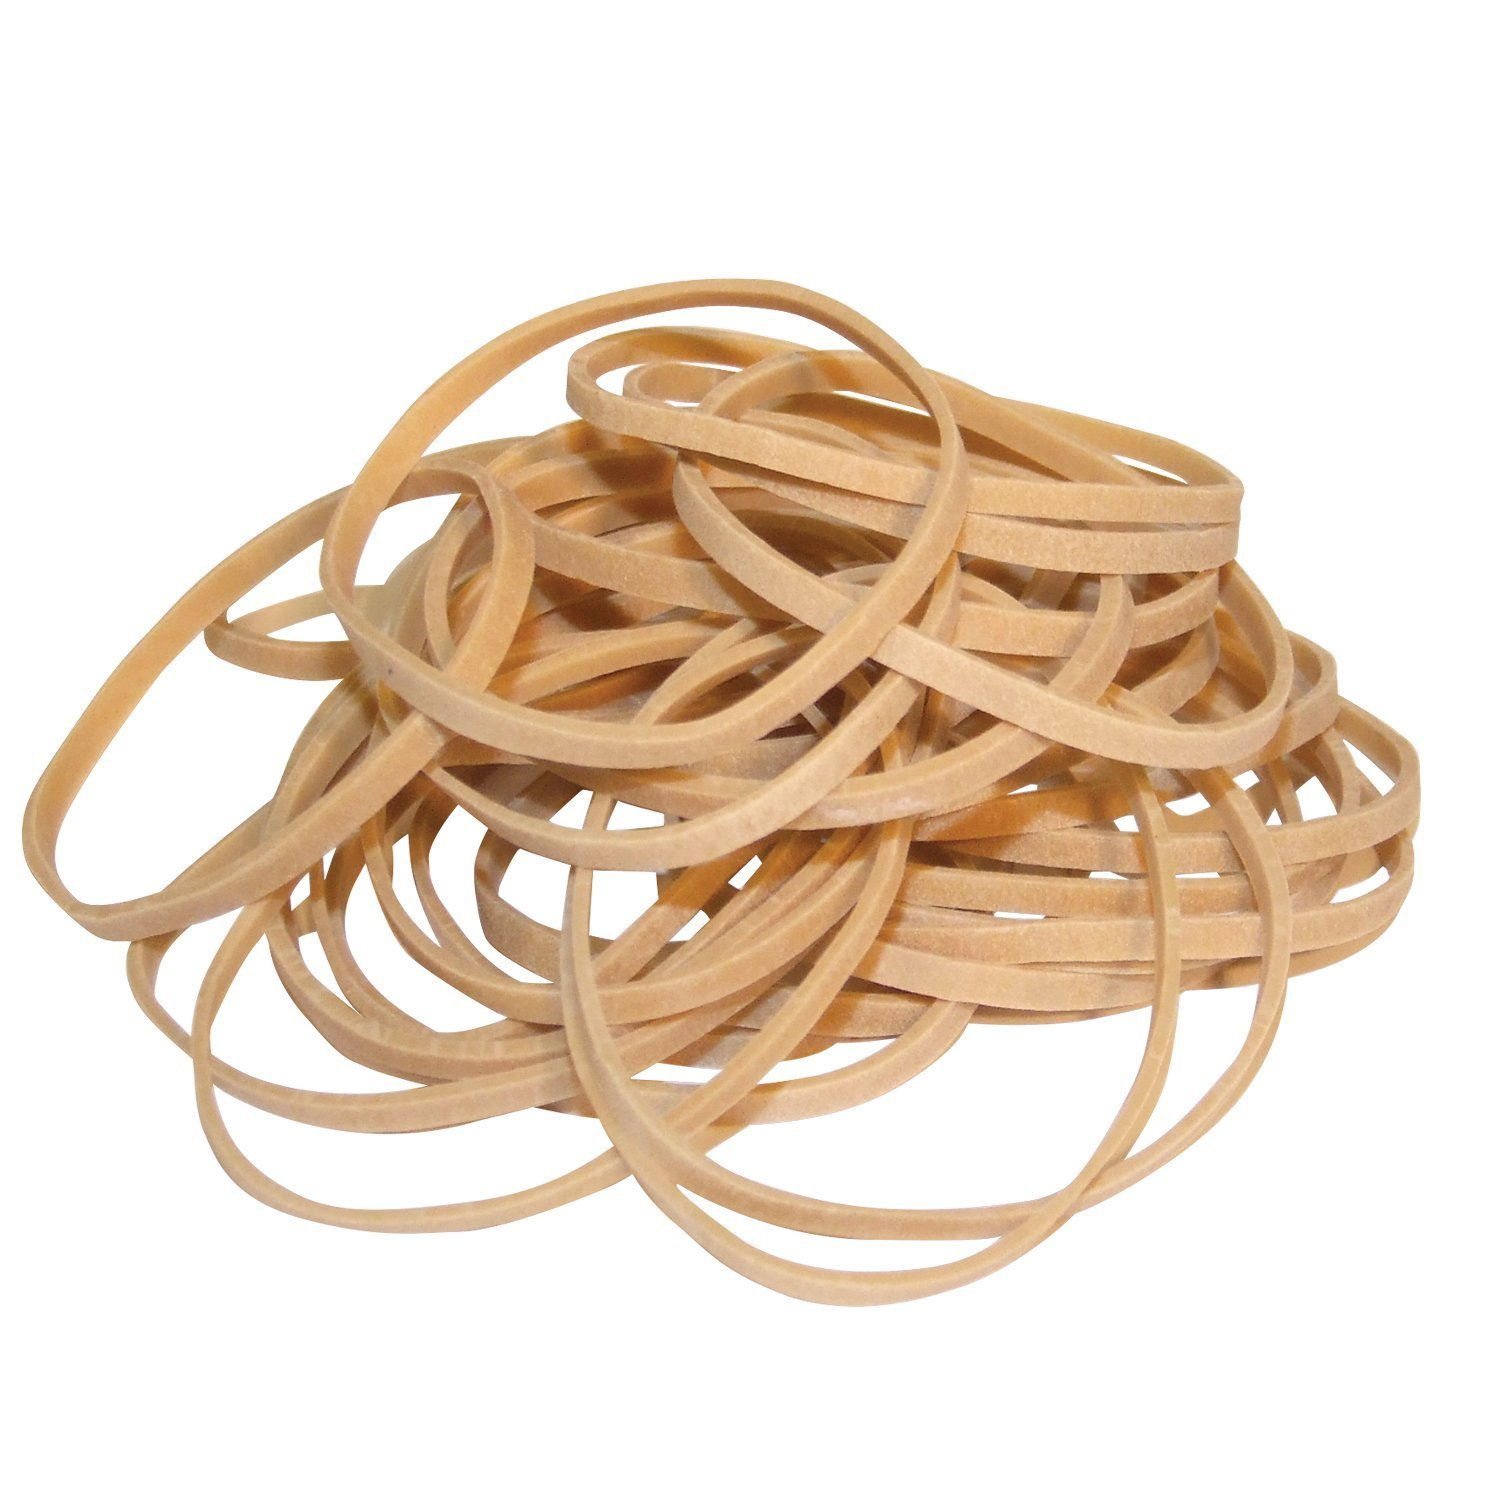 Value Rubber Bands (No 34) 3x100mm 454g